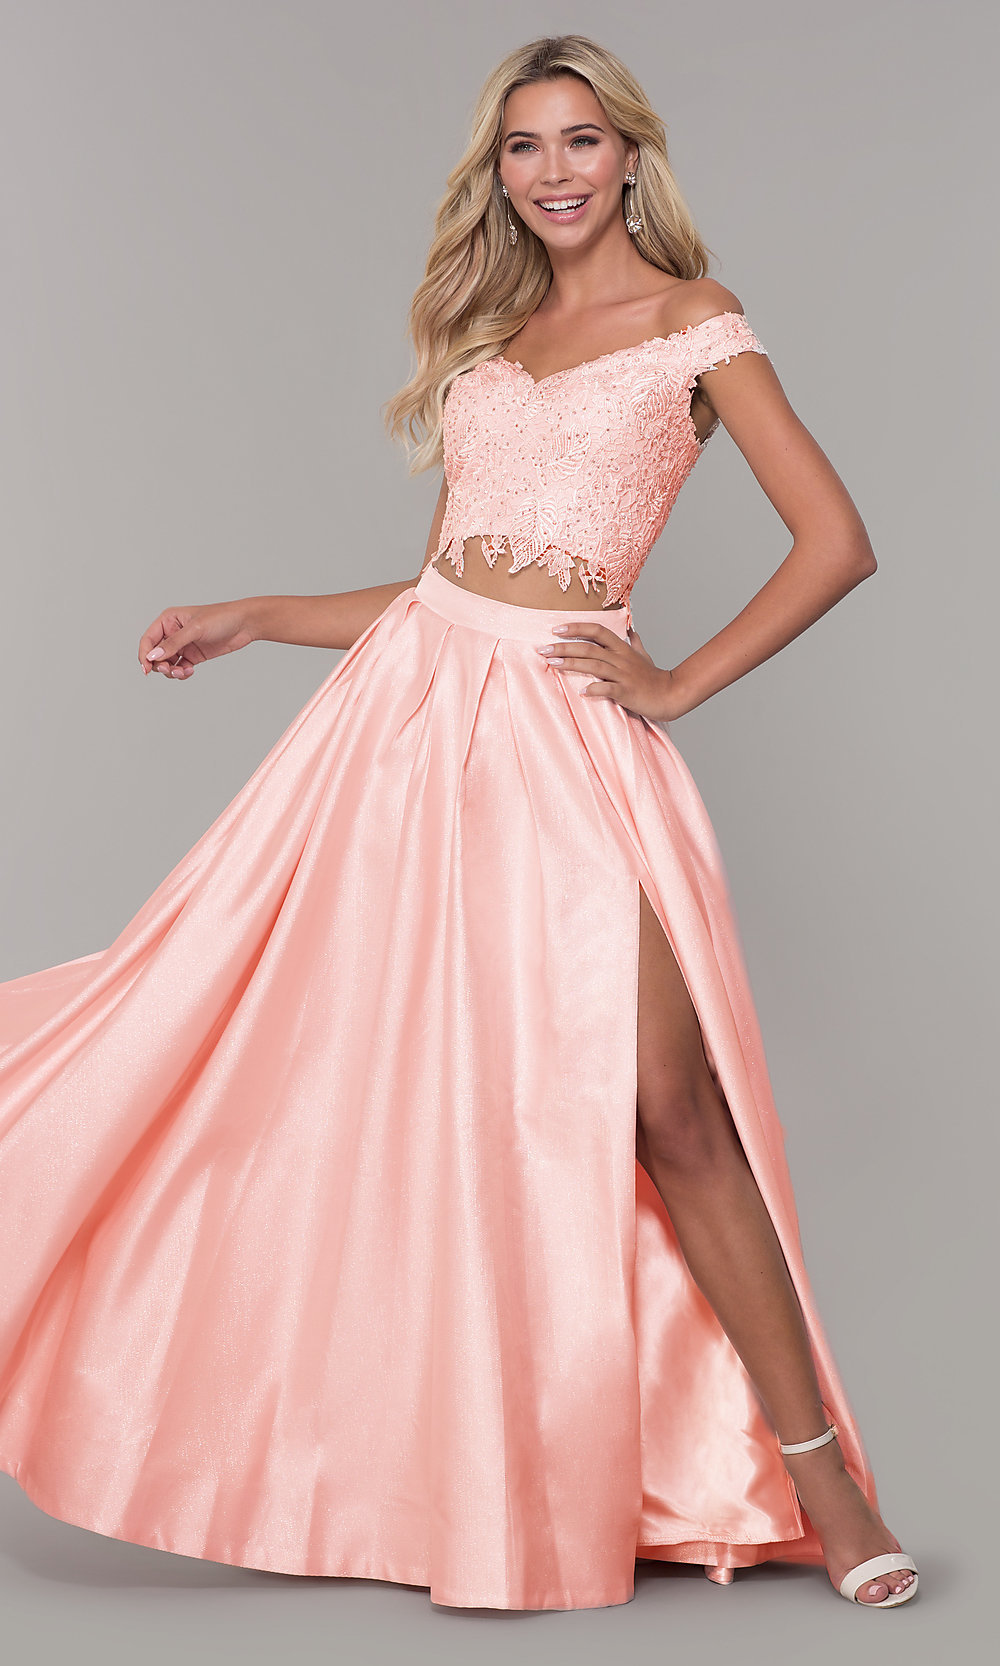 latest releases select for clearance special for shoe Two-Piece Long Off-the-Shoulder Prom Dress